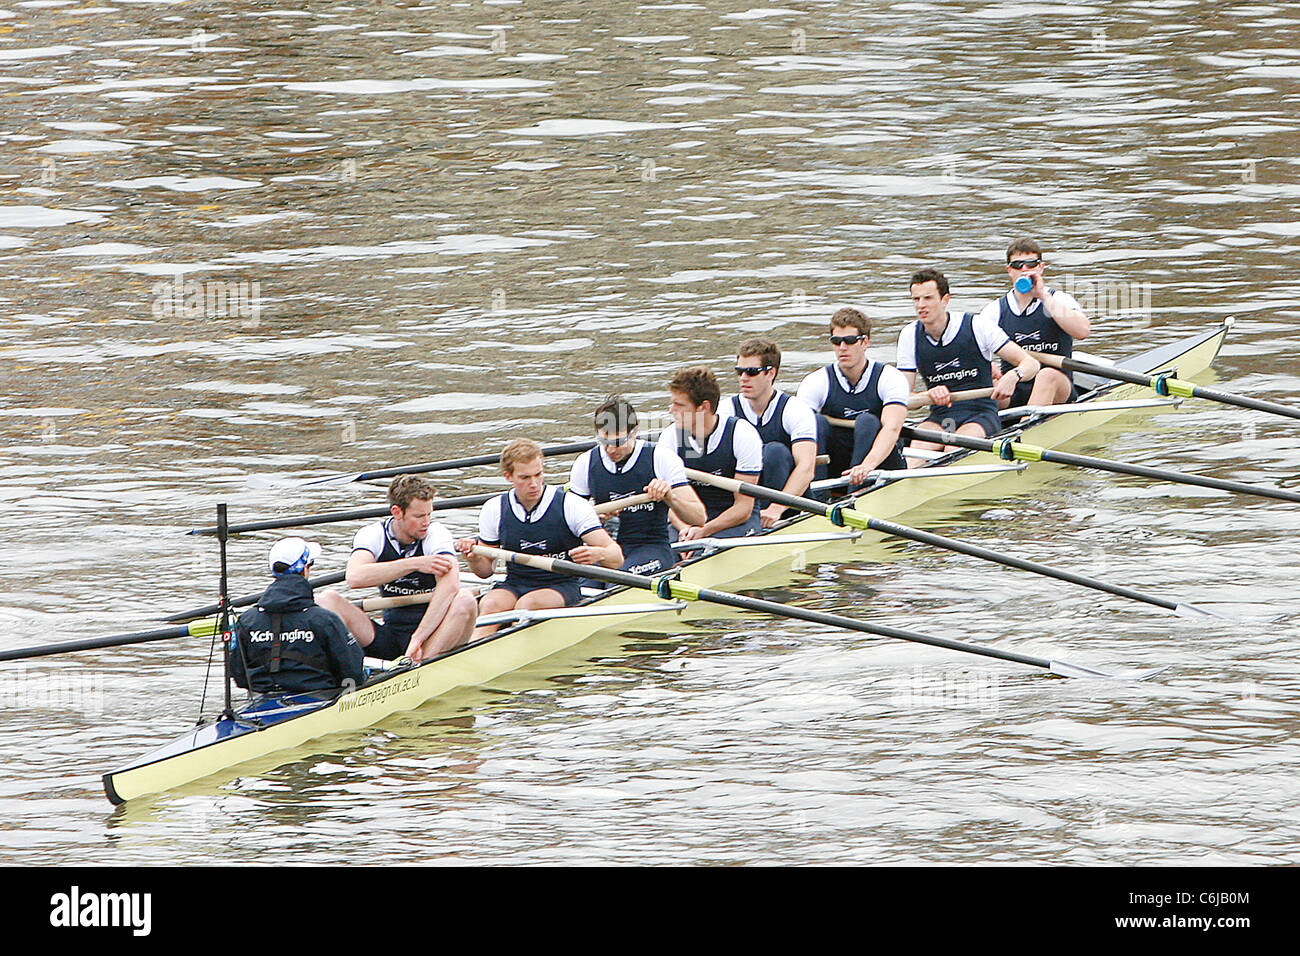 The Oxford boat team, who lost to the Cambridge team, at The 156th Oxford vs Cambridge boat race on River Thames - Stock Image